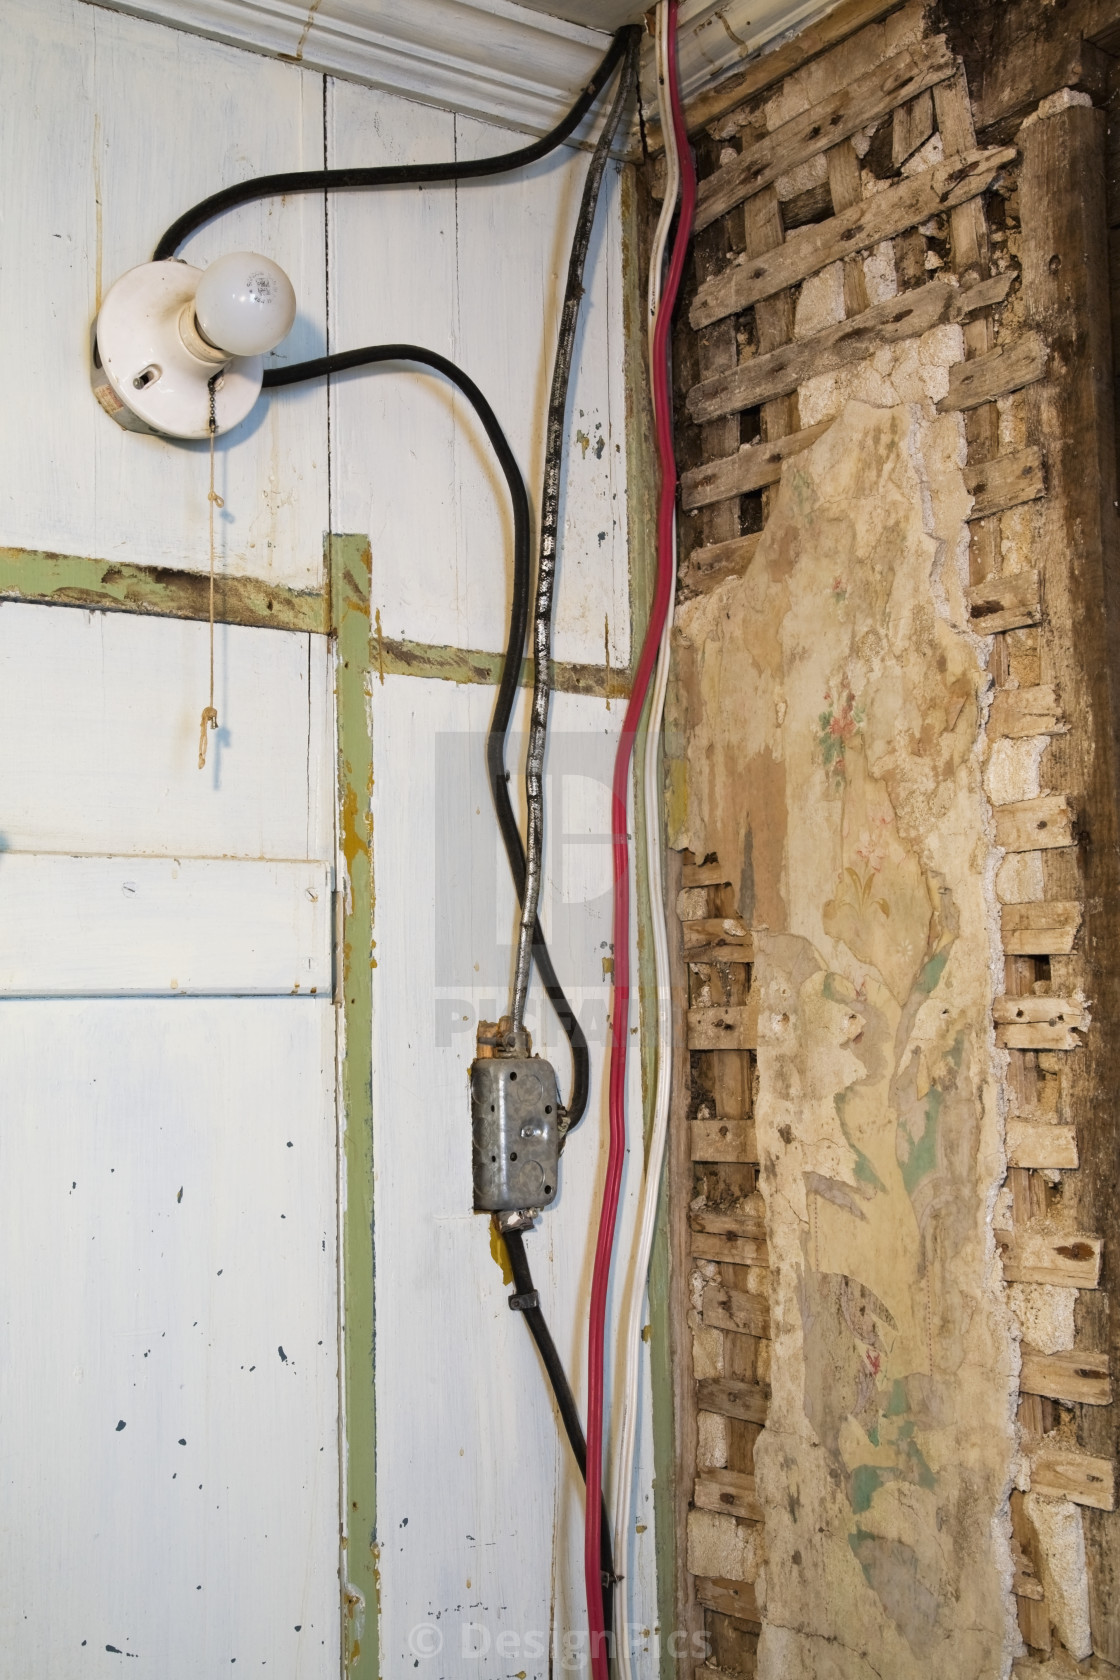 Old Electrical Cloth Insulated And Plastic Wiring, Light ... on